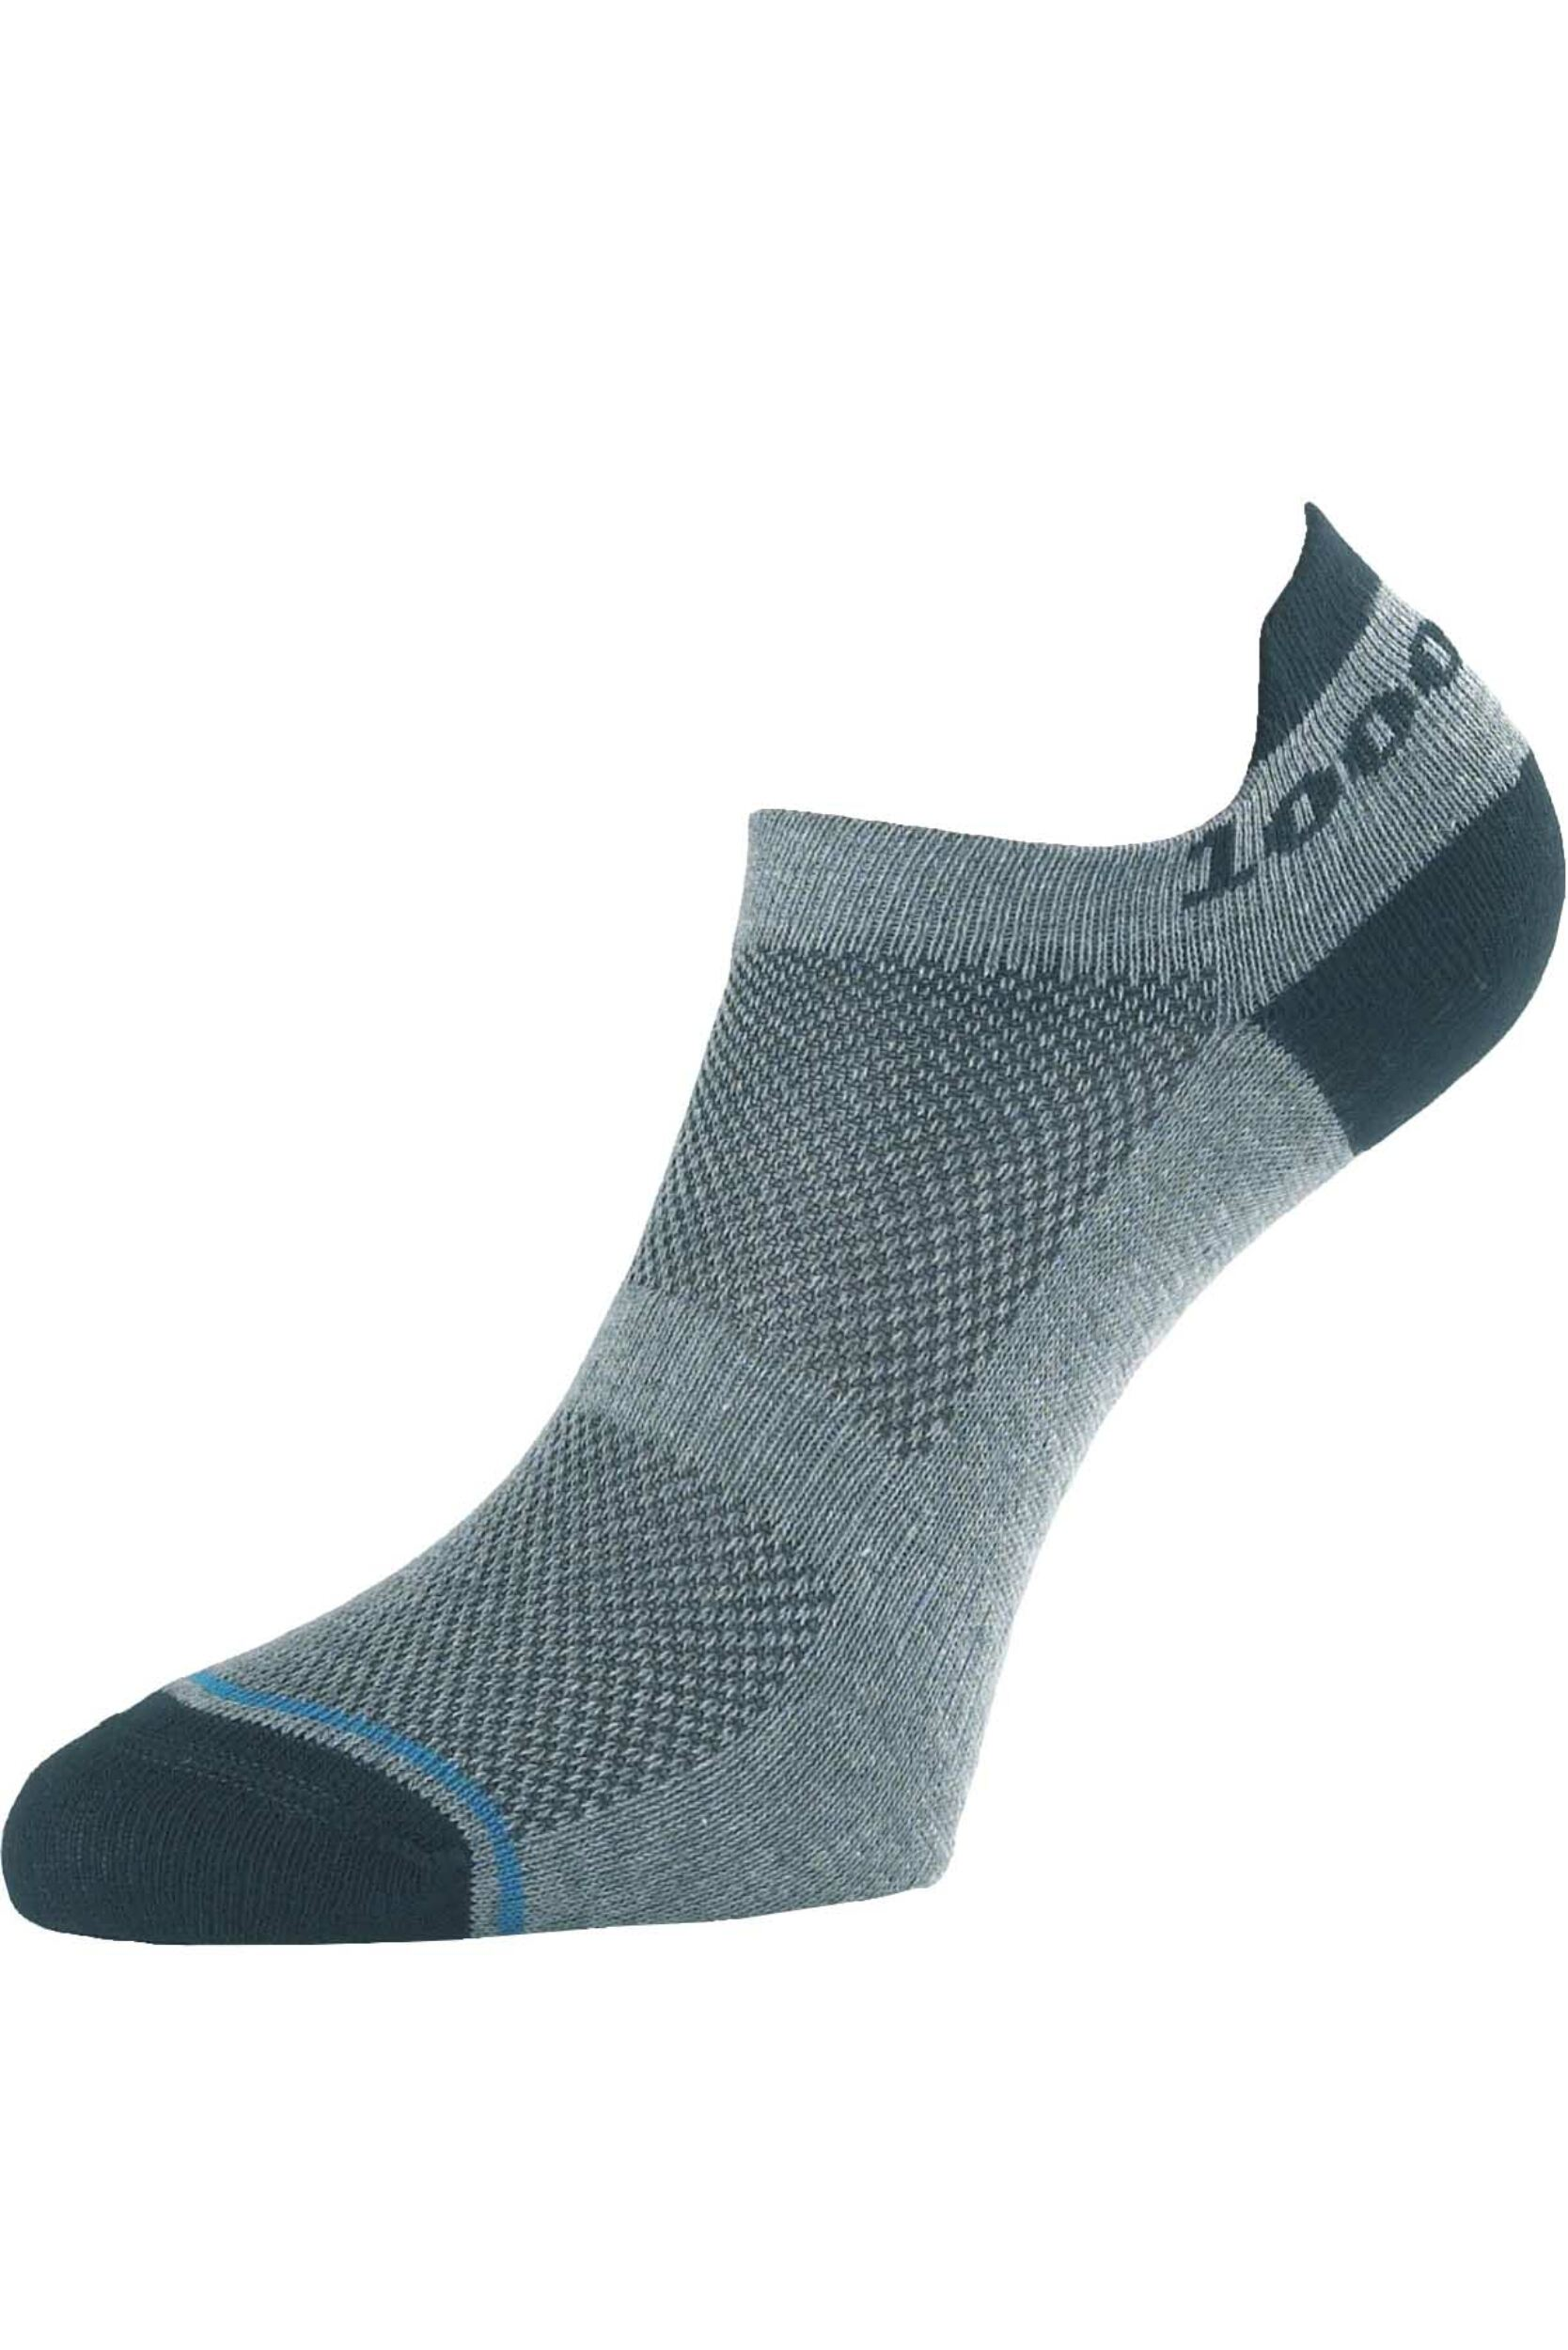 Image of Mens 1 Pair 1000 Mile 'Tactel' Ultimate Technical Racing Trainer Socklet